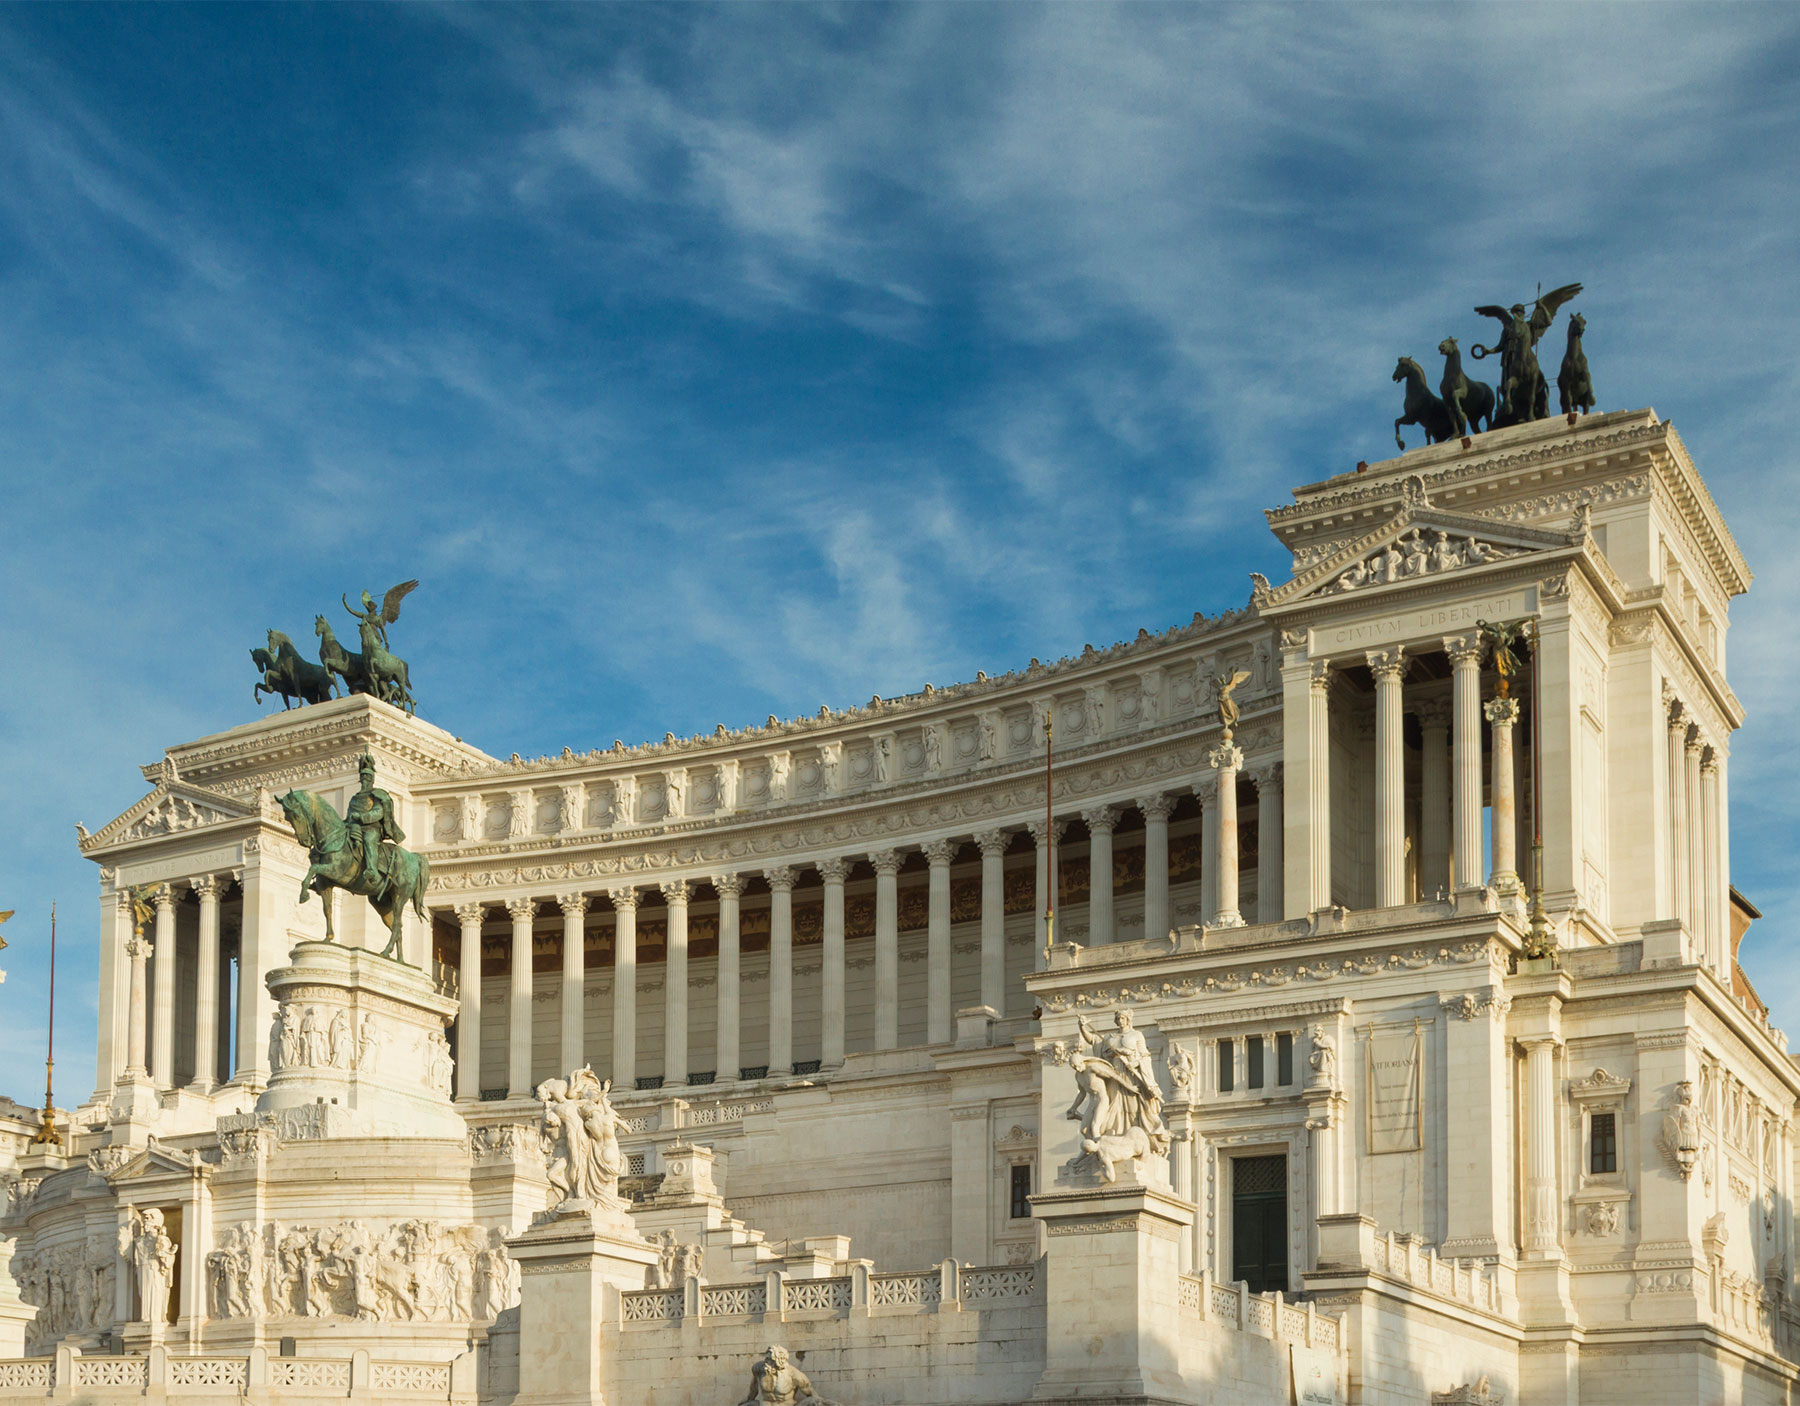 Piazza Venezia and Altare in Rome